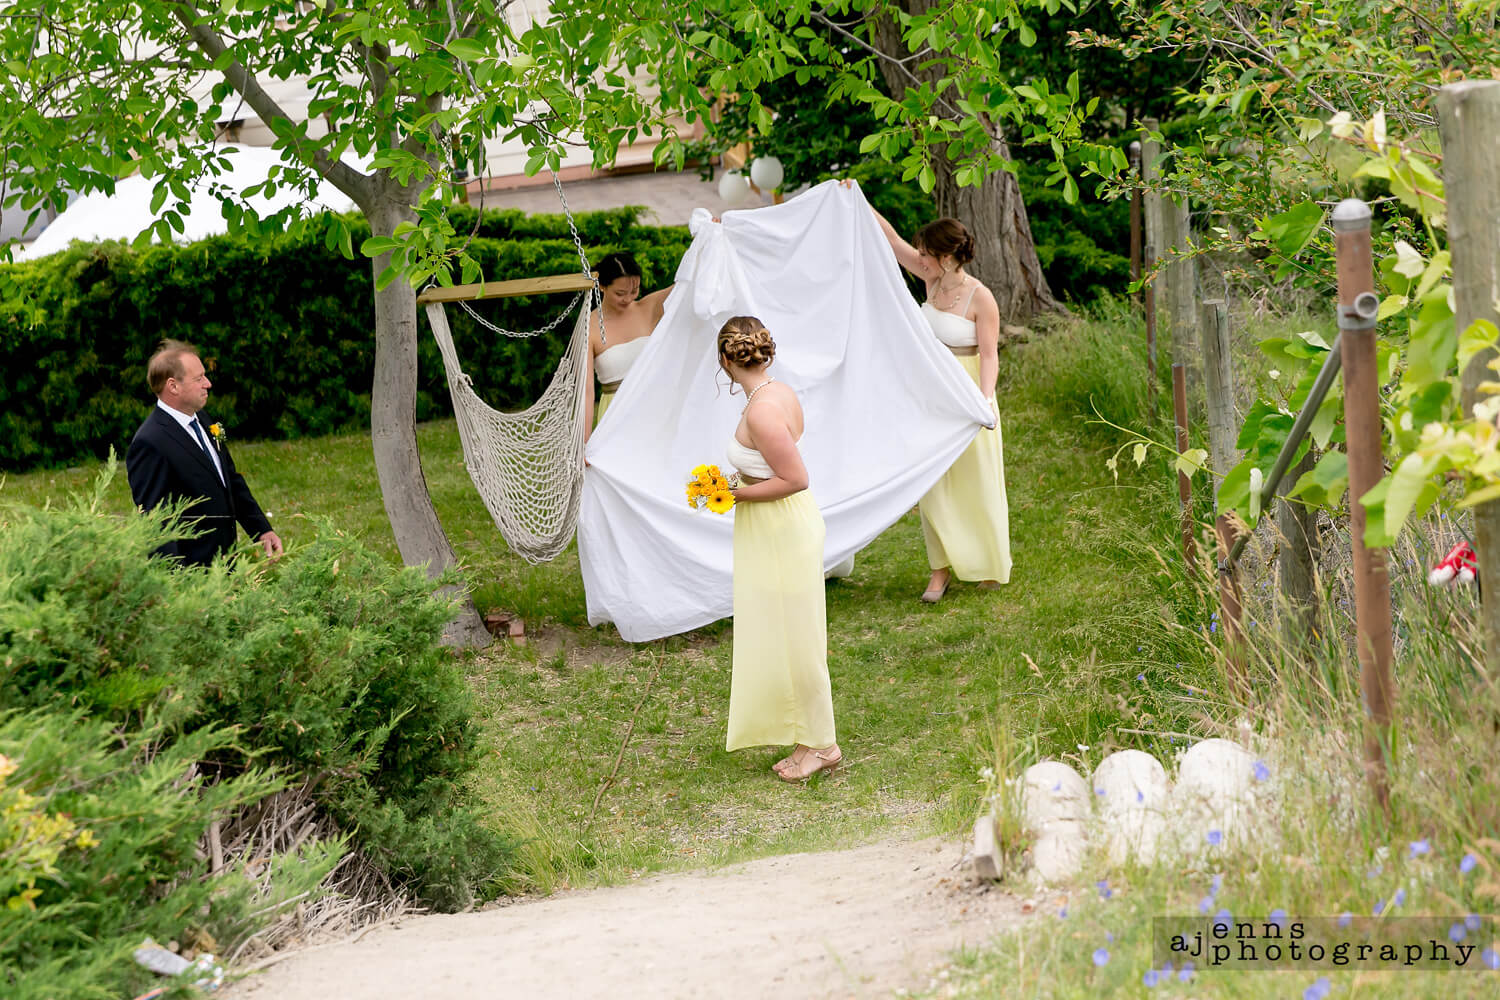 The bridesmaids shielding the bride from letting the groom see her before it's time